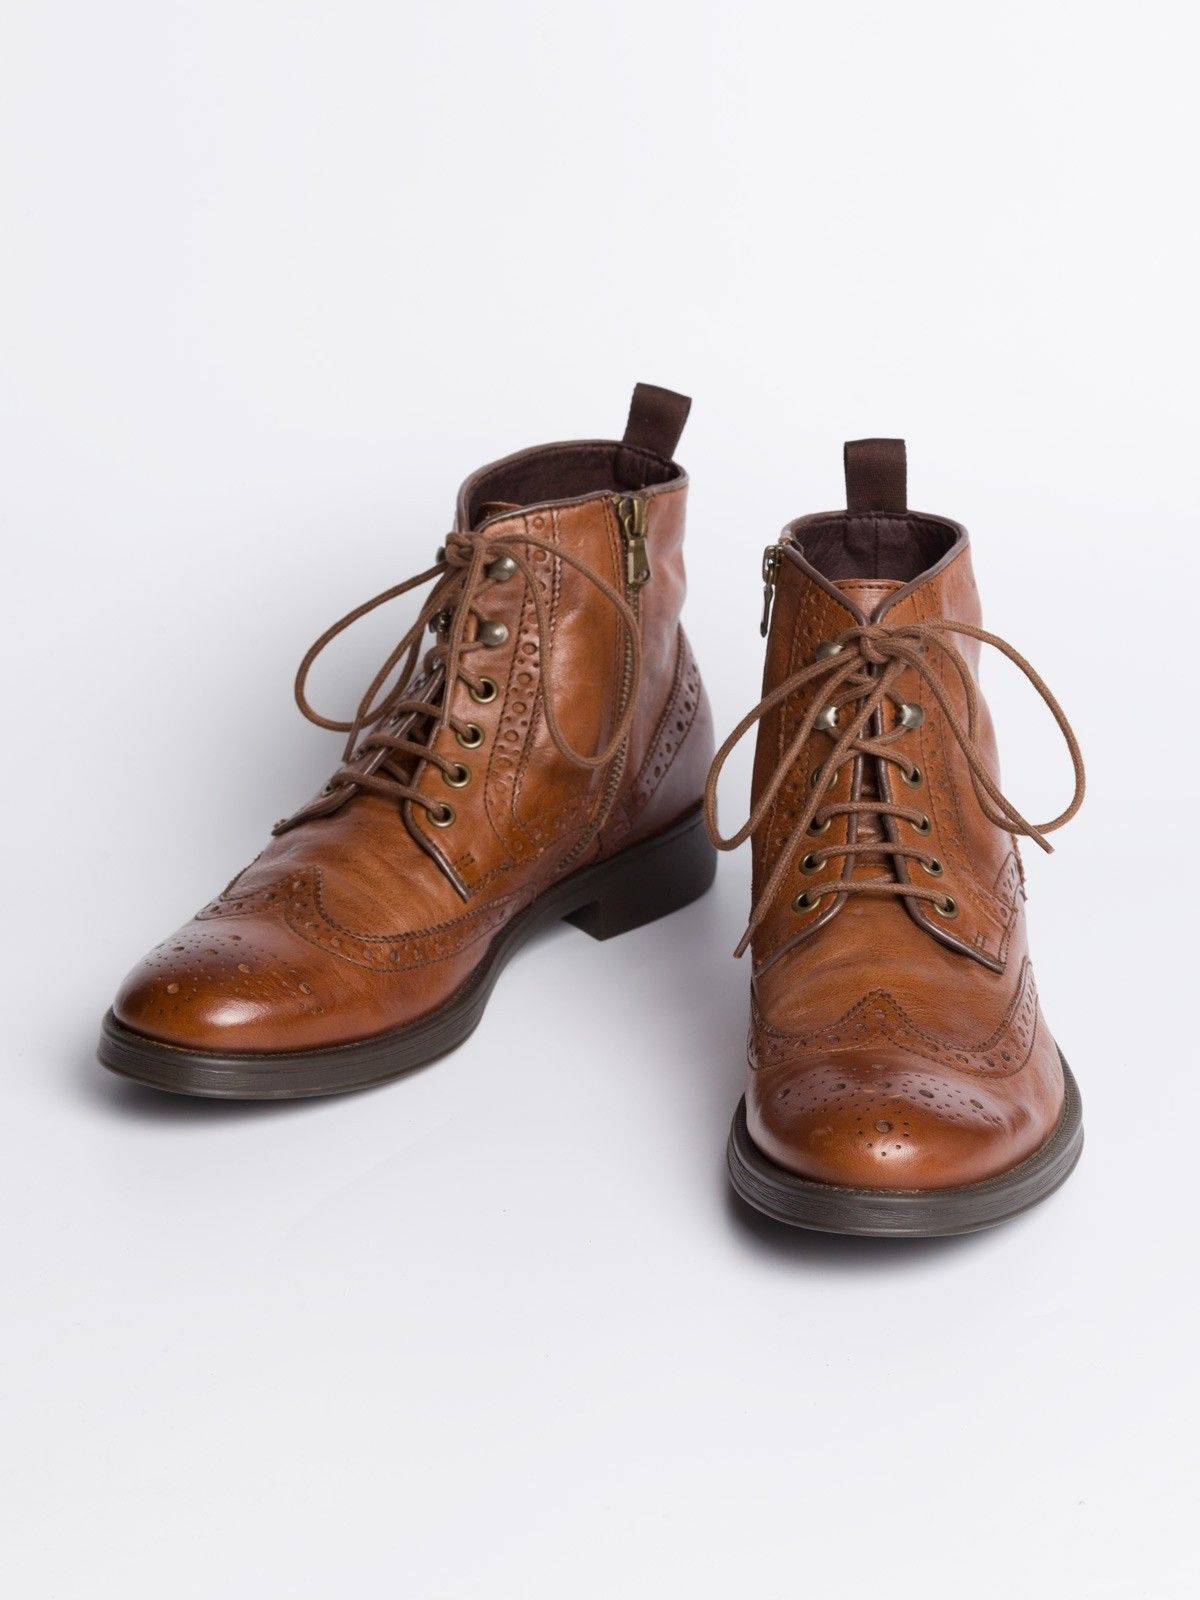 b27d0d178732 Geox Leather Brogue Boots - A modern hybrid from the geniuses at Geox. A  comfortable